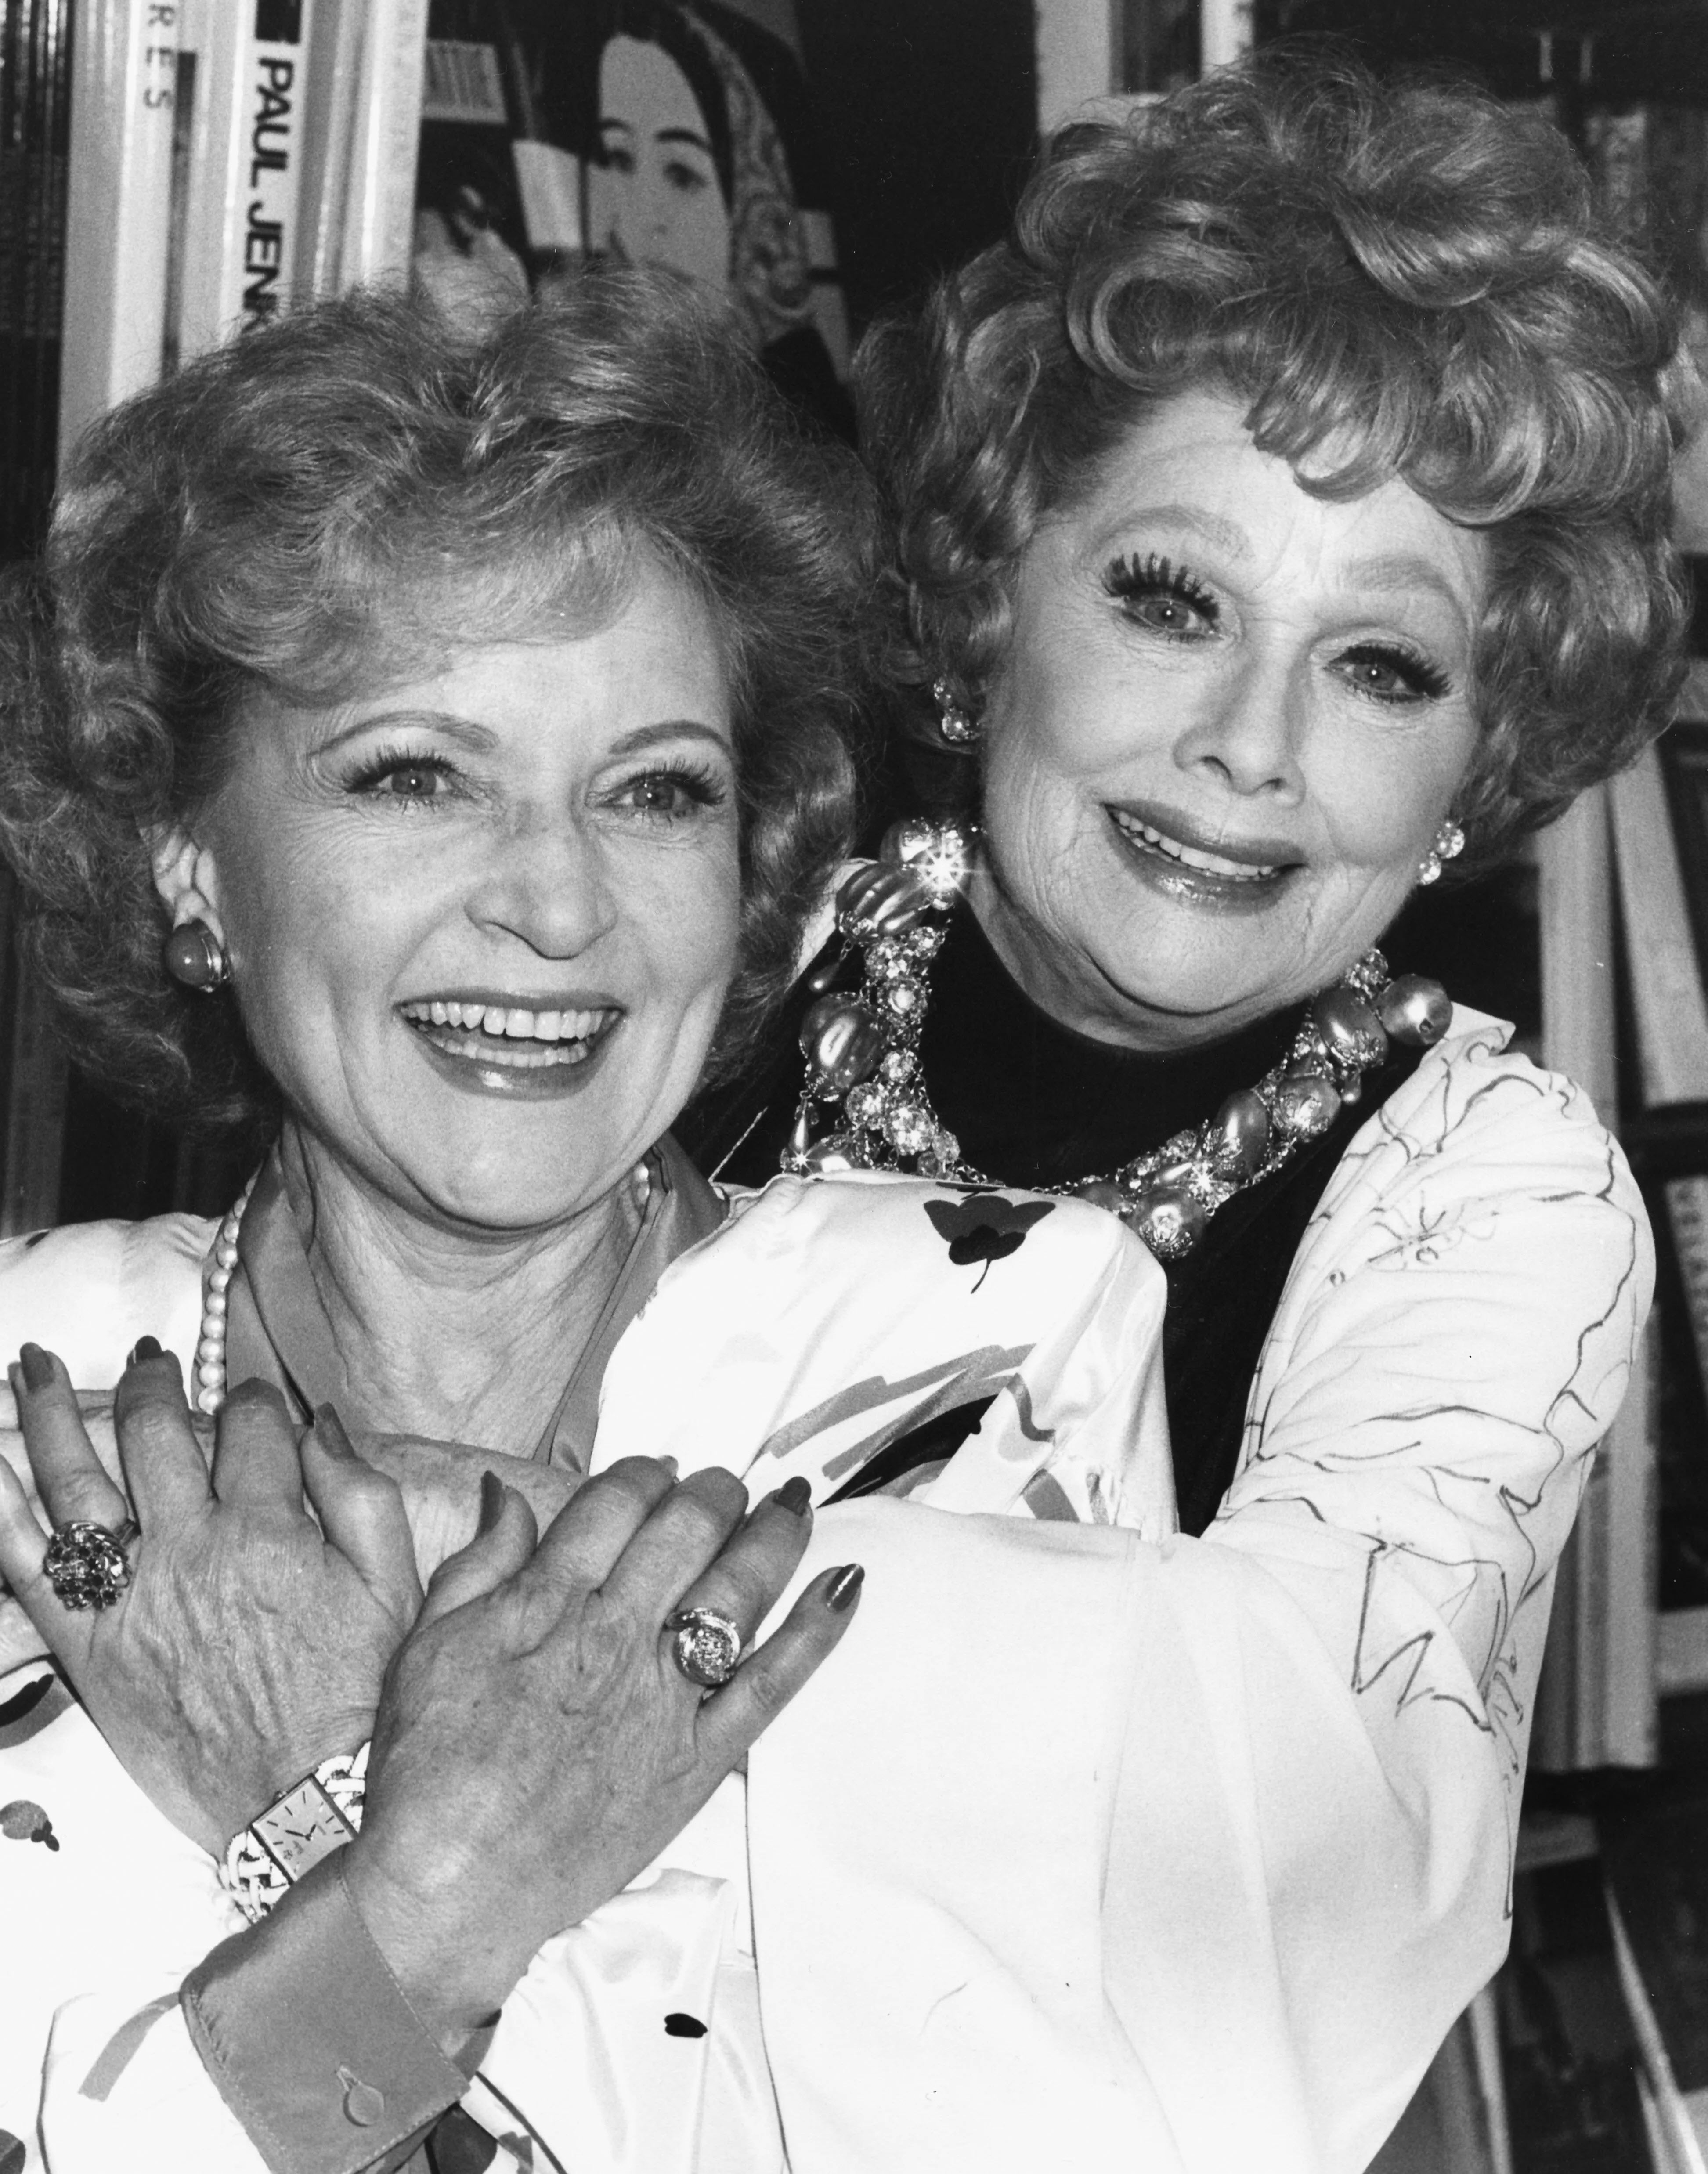 Betty White with Lucille Ball at a book signing event in Los Angeles, October 2nd 1987